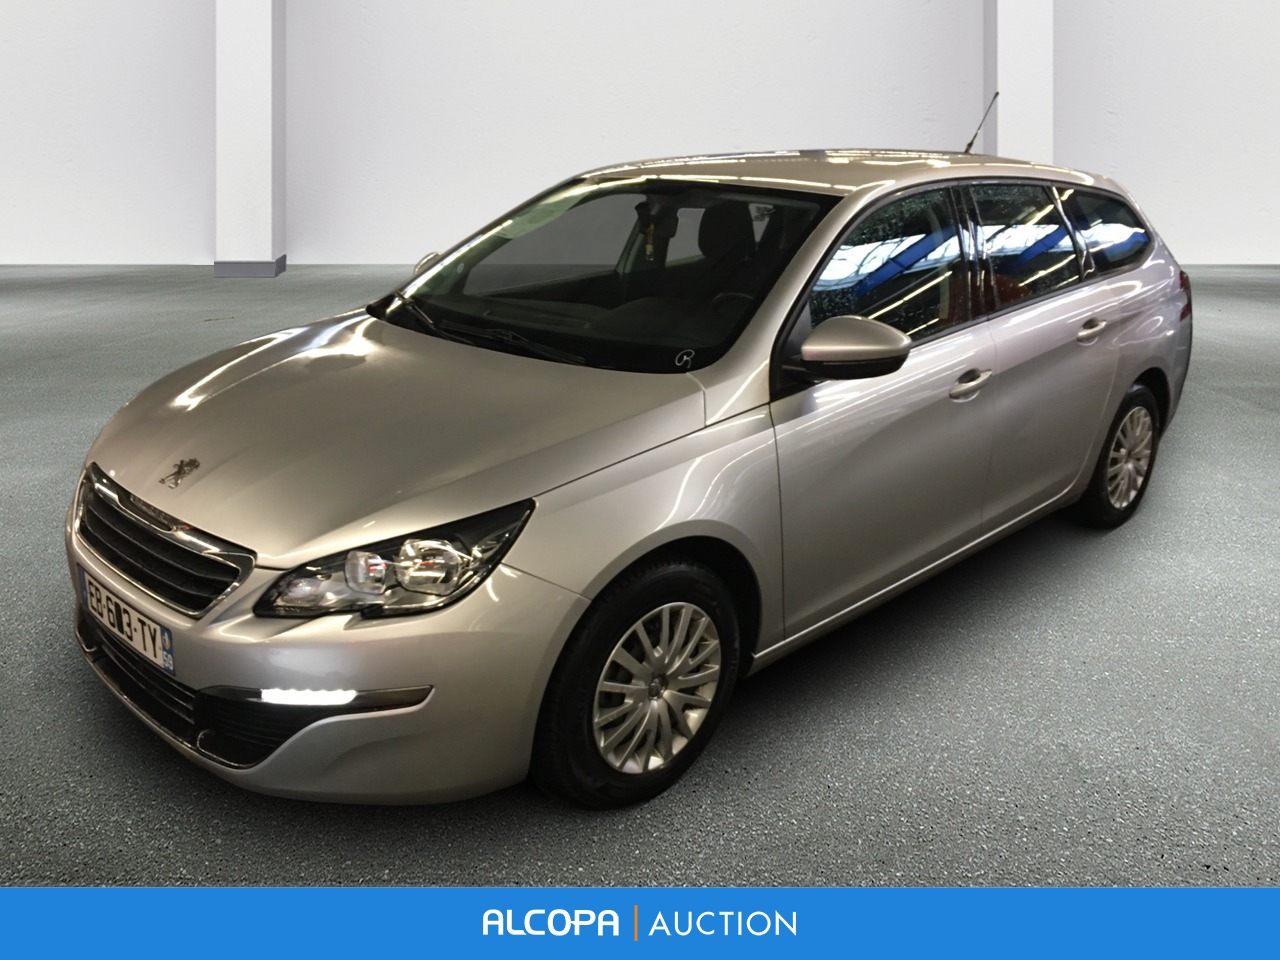 peugeot 308 sw business 308 sw 1 6hdi 100ch bvm5 business alcopa auction. Black Bedroom Furniture Sets. Home Design Ideas